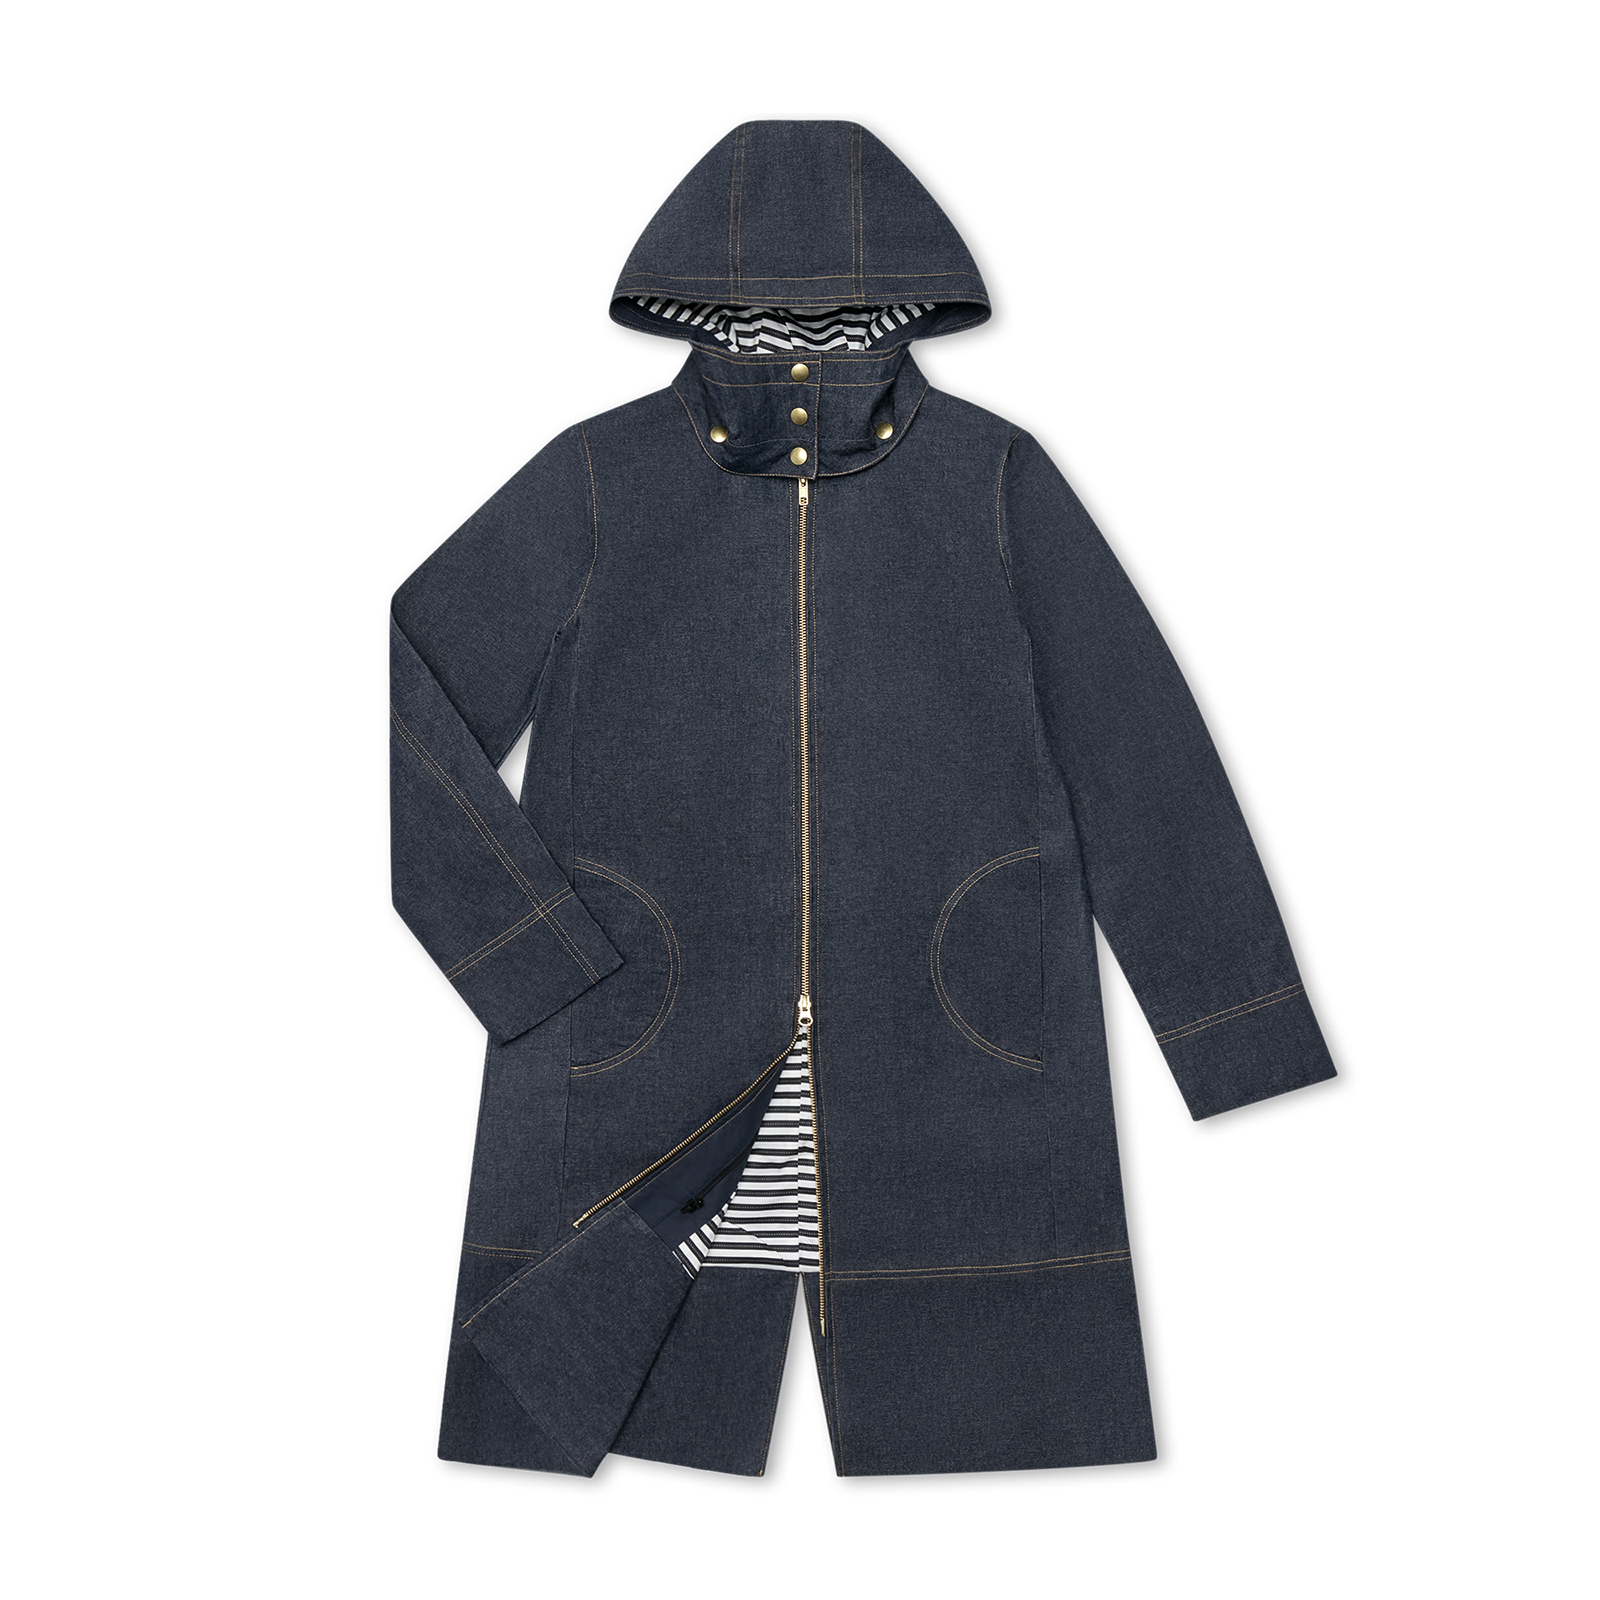 Jeans parka product photography